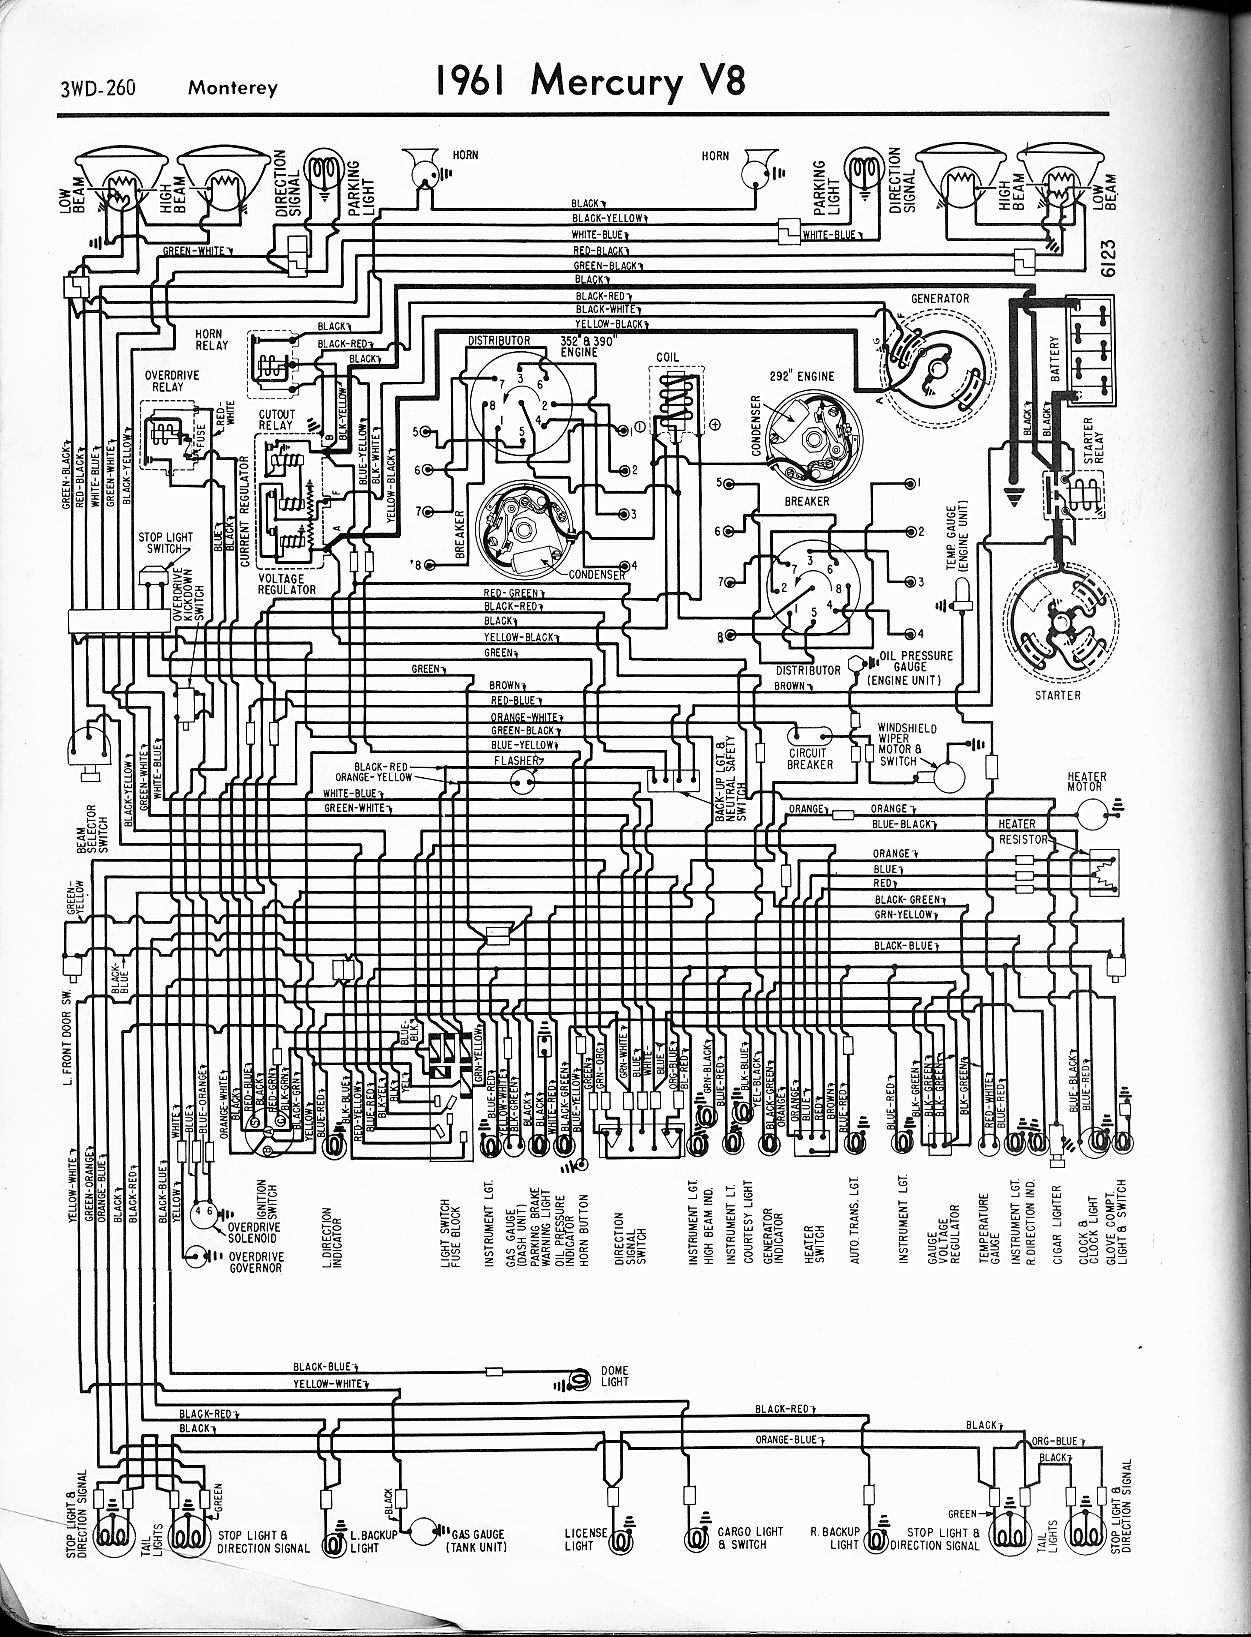 1965 mercury comet wiring diagram wiring data schema u2022 rh exoticterra co Home Wiring Diagrams Do It Yourself Home Wiring